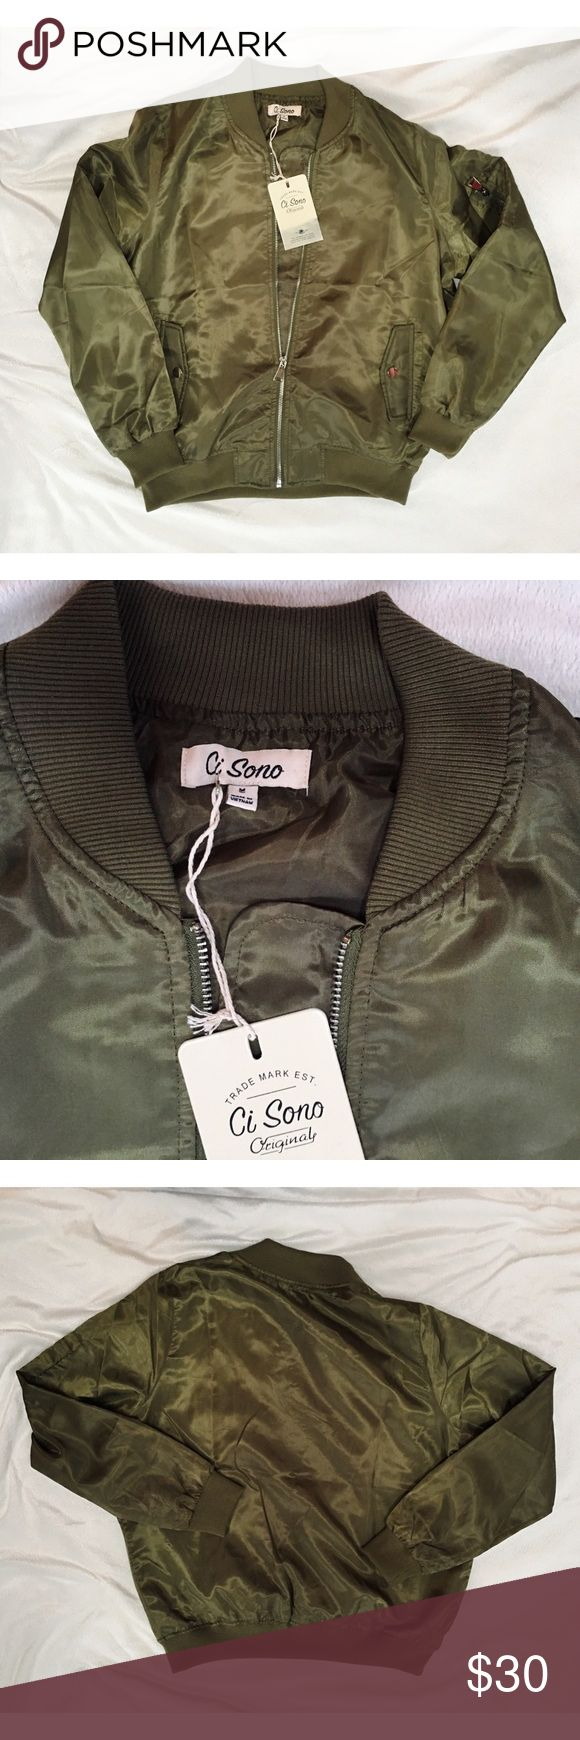 NWT Ci Sono nylon bomber jacket Olive green bomber jacket. Gorgeous and fashionable. Make me an offer xx ci sono Jackets & Coats